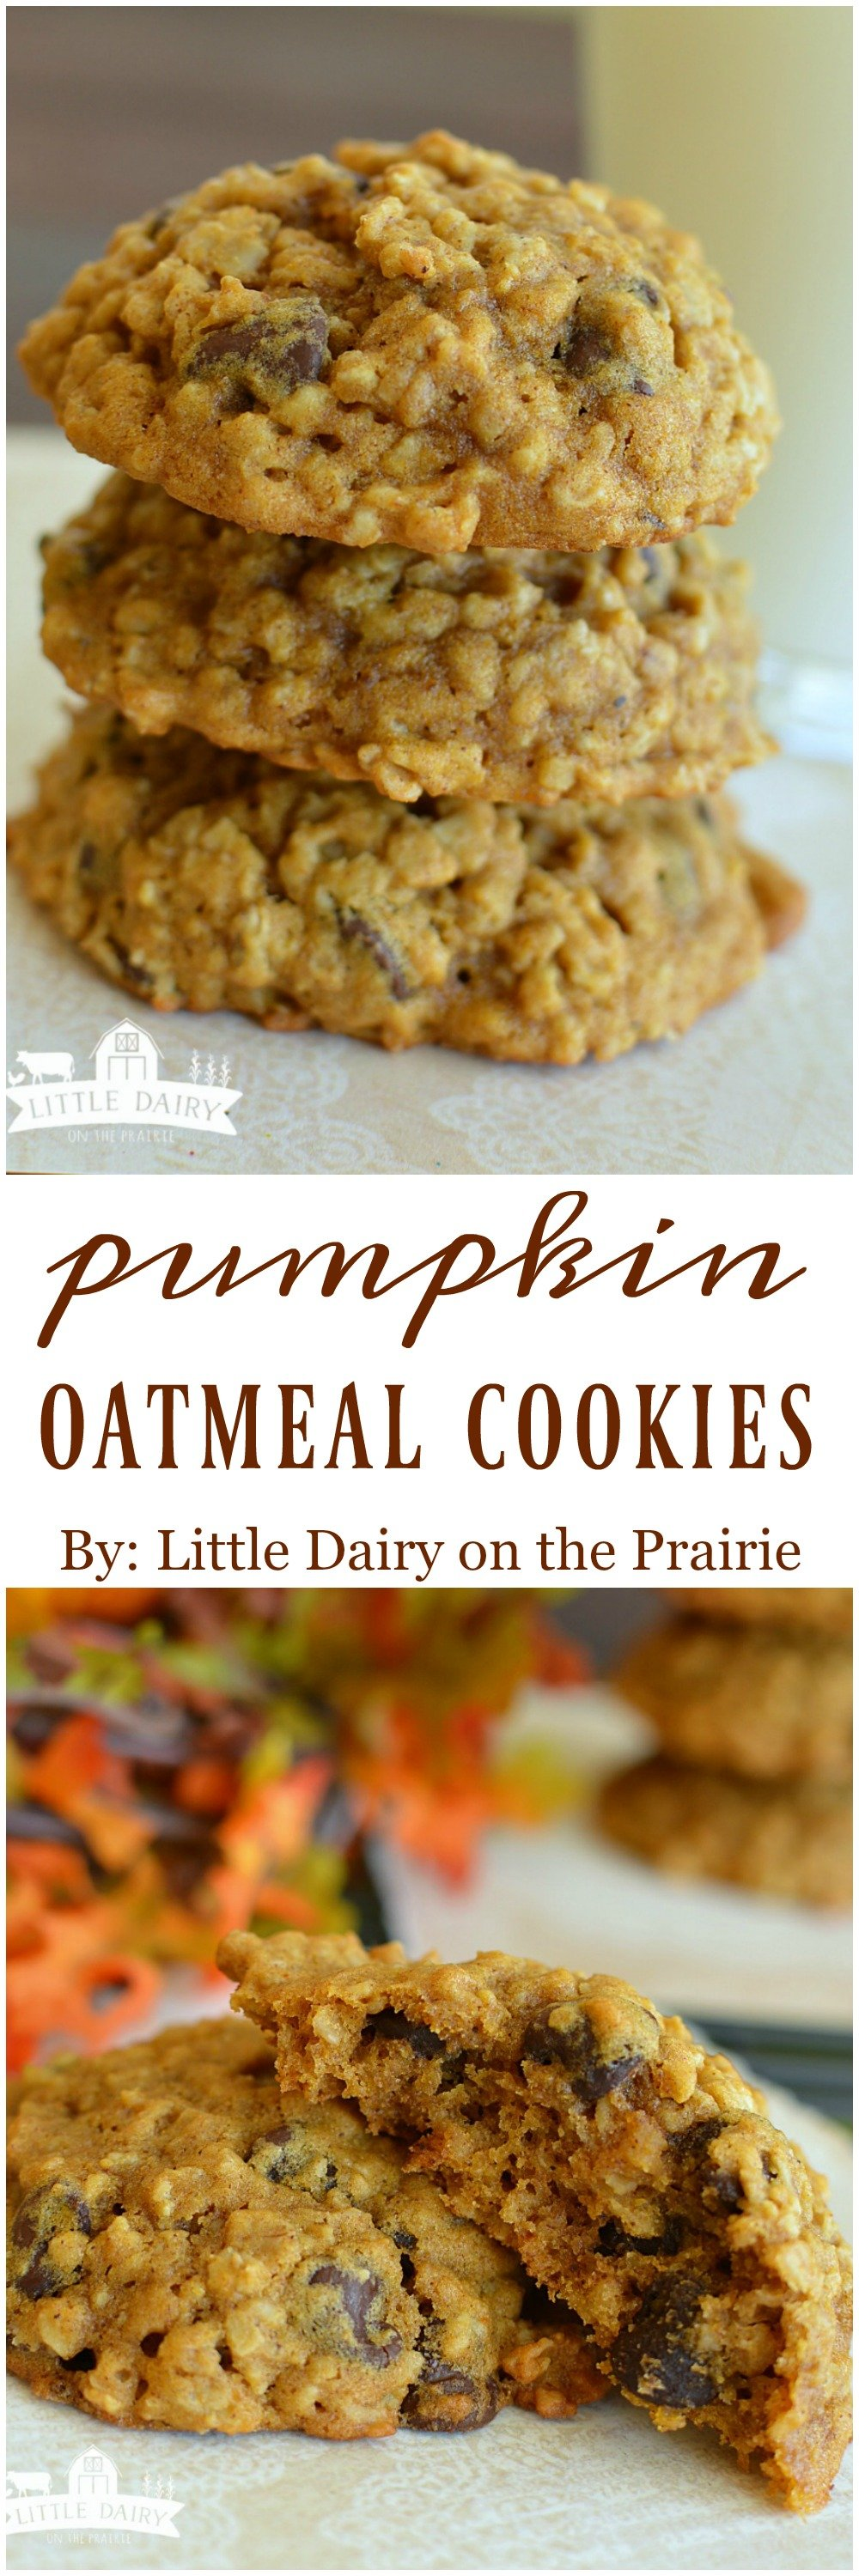 Pumpkin Oatmeal Chocolate Chip Cookies - Little Dairy On the Prairie